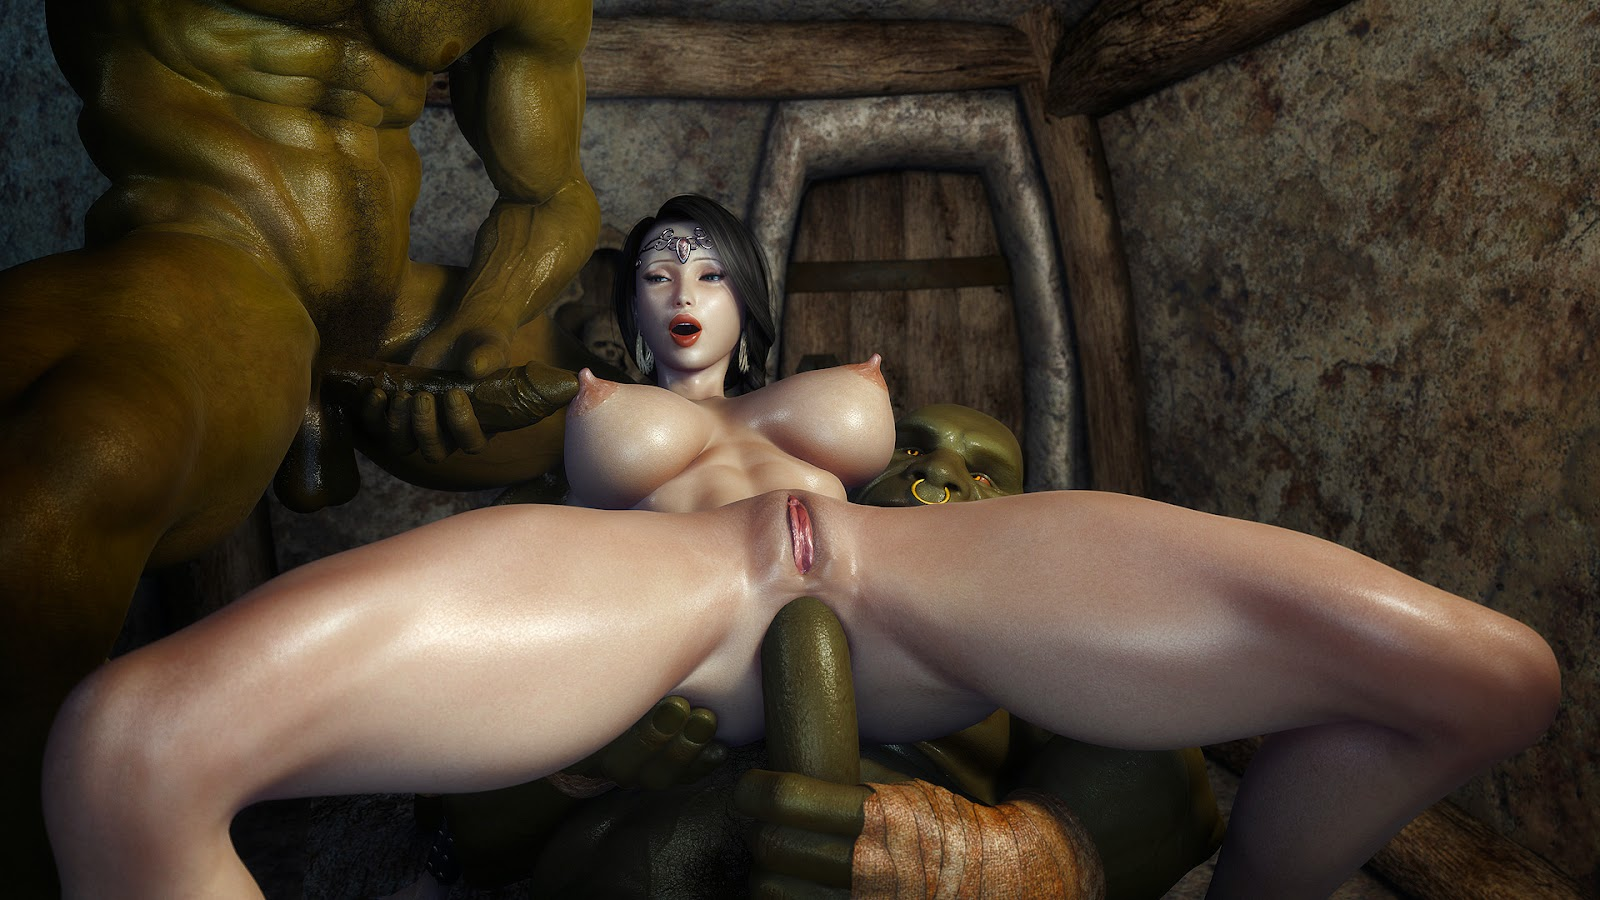 The witcher iii nudity xxx videos